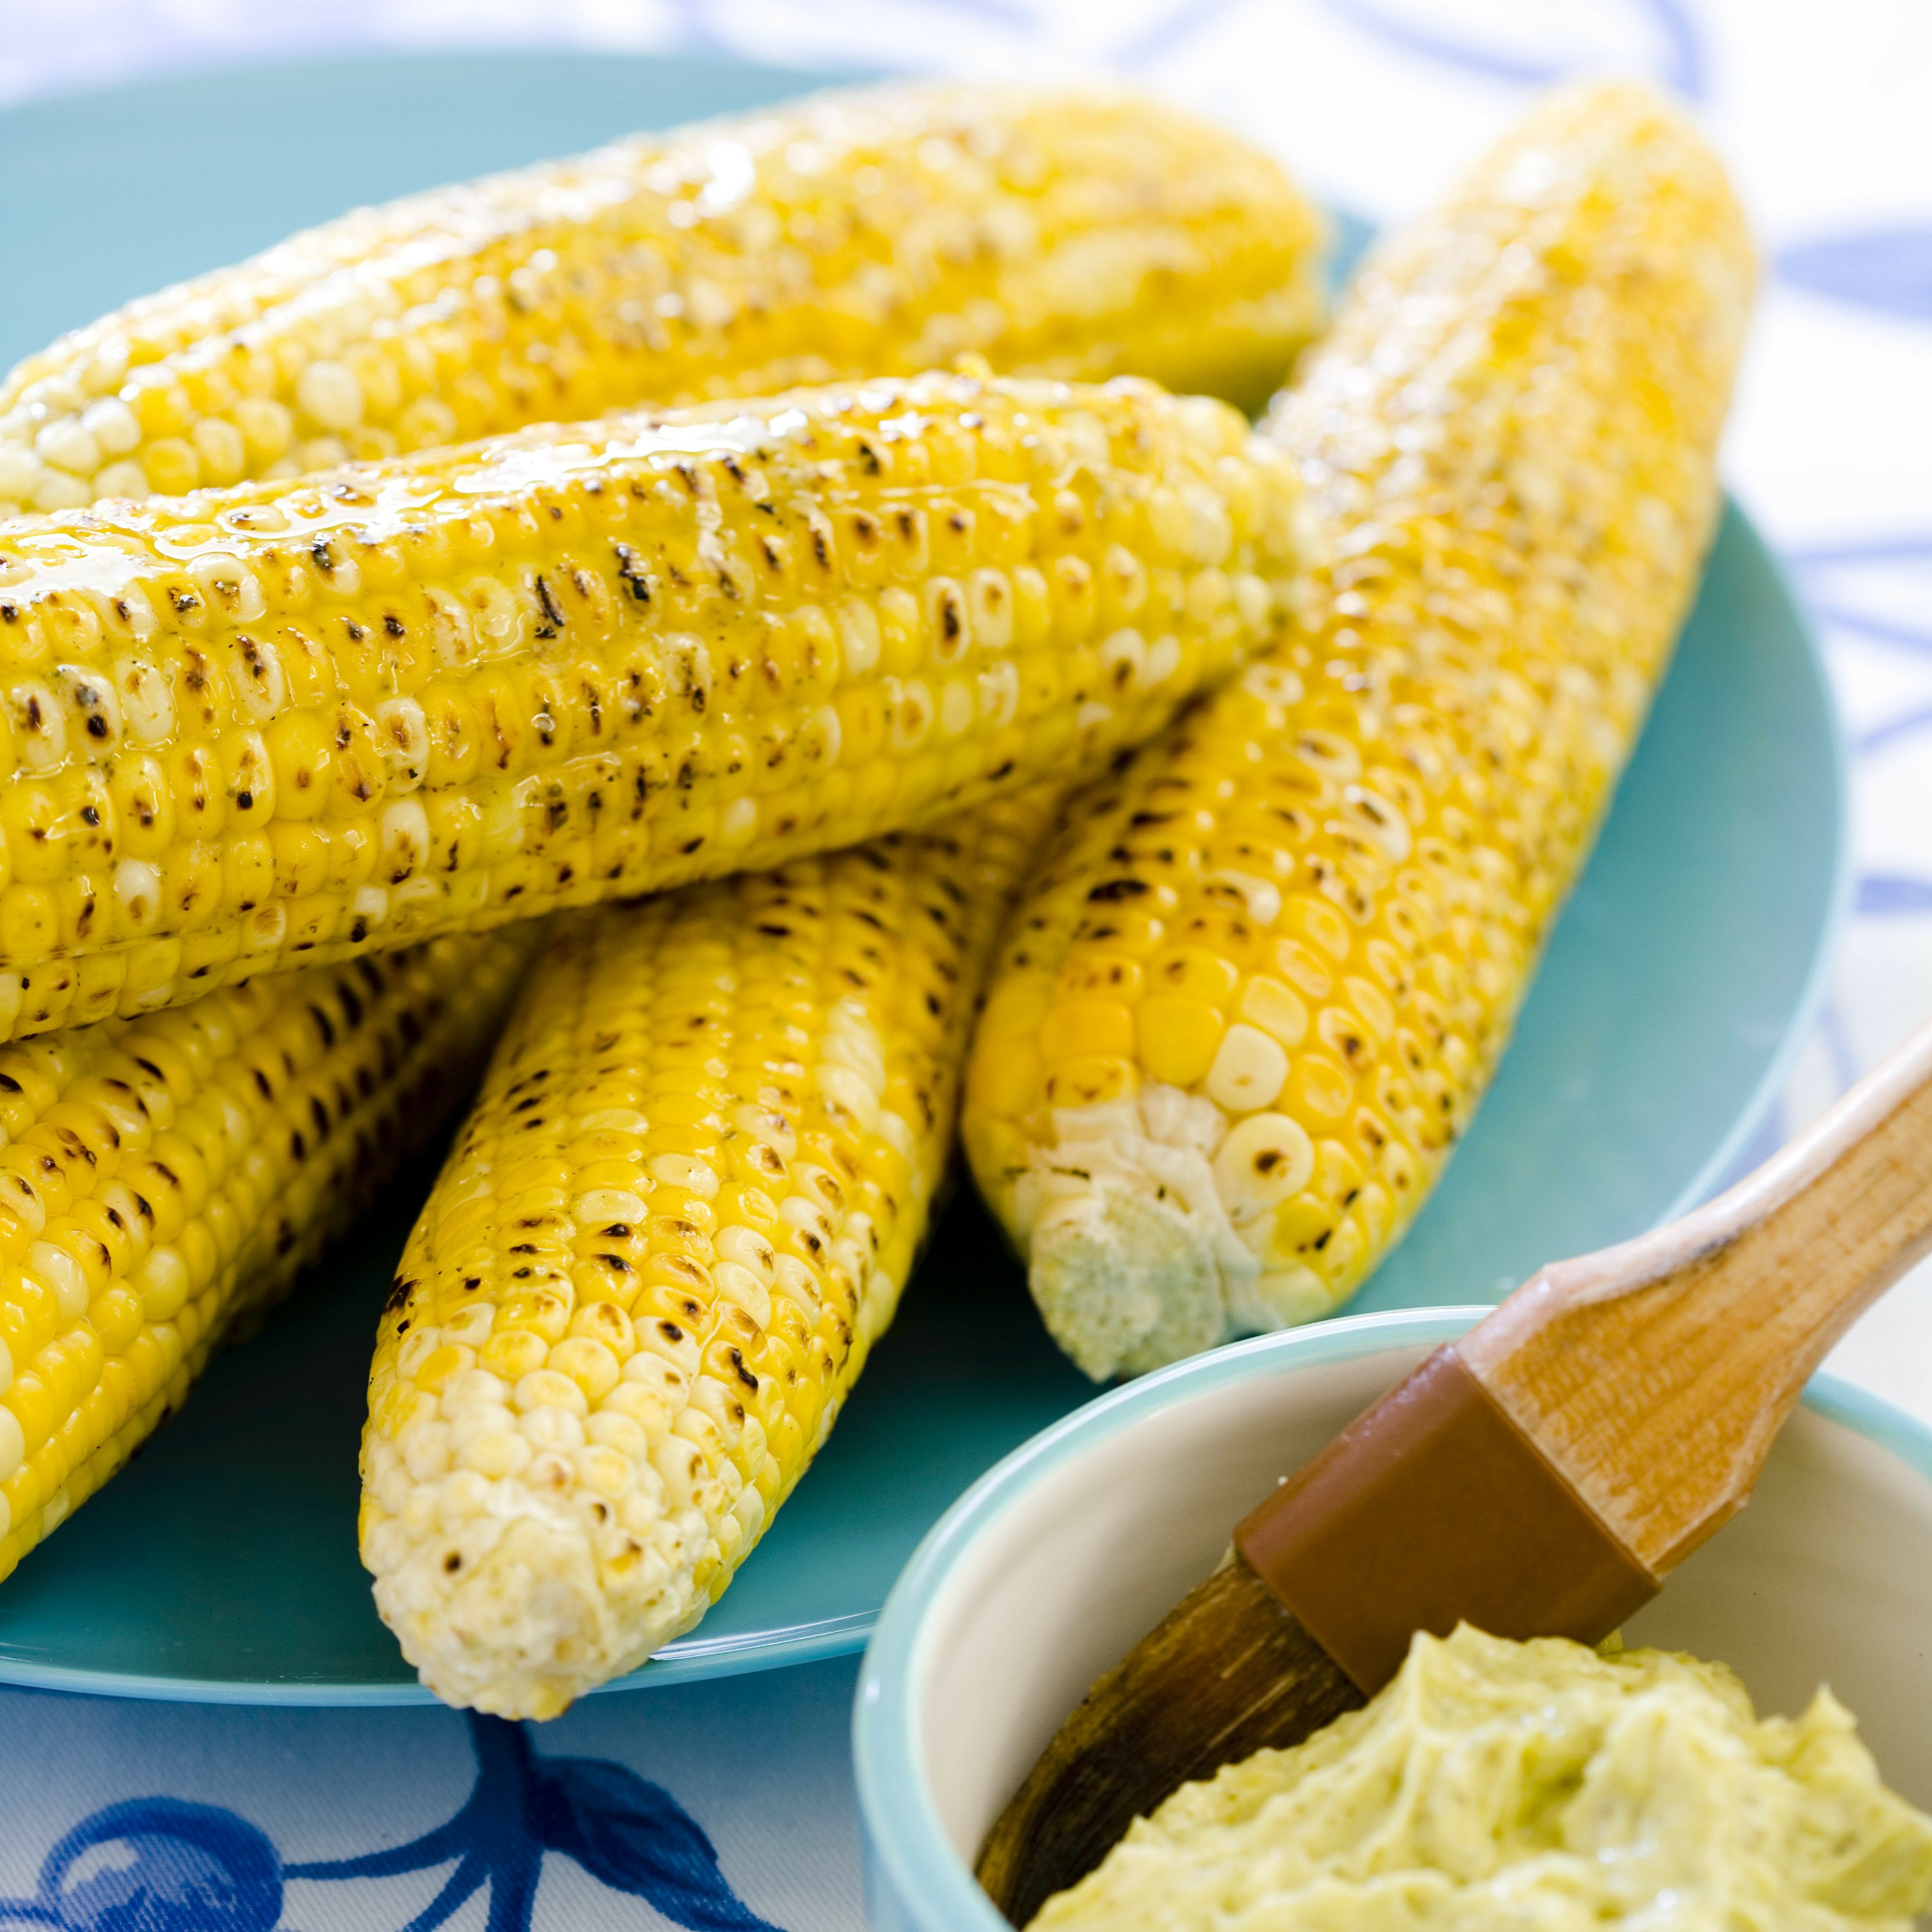 The secret to perfectly grilled corn? Cook them unhusked